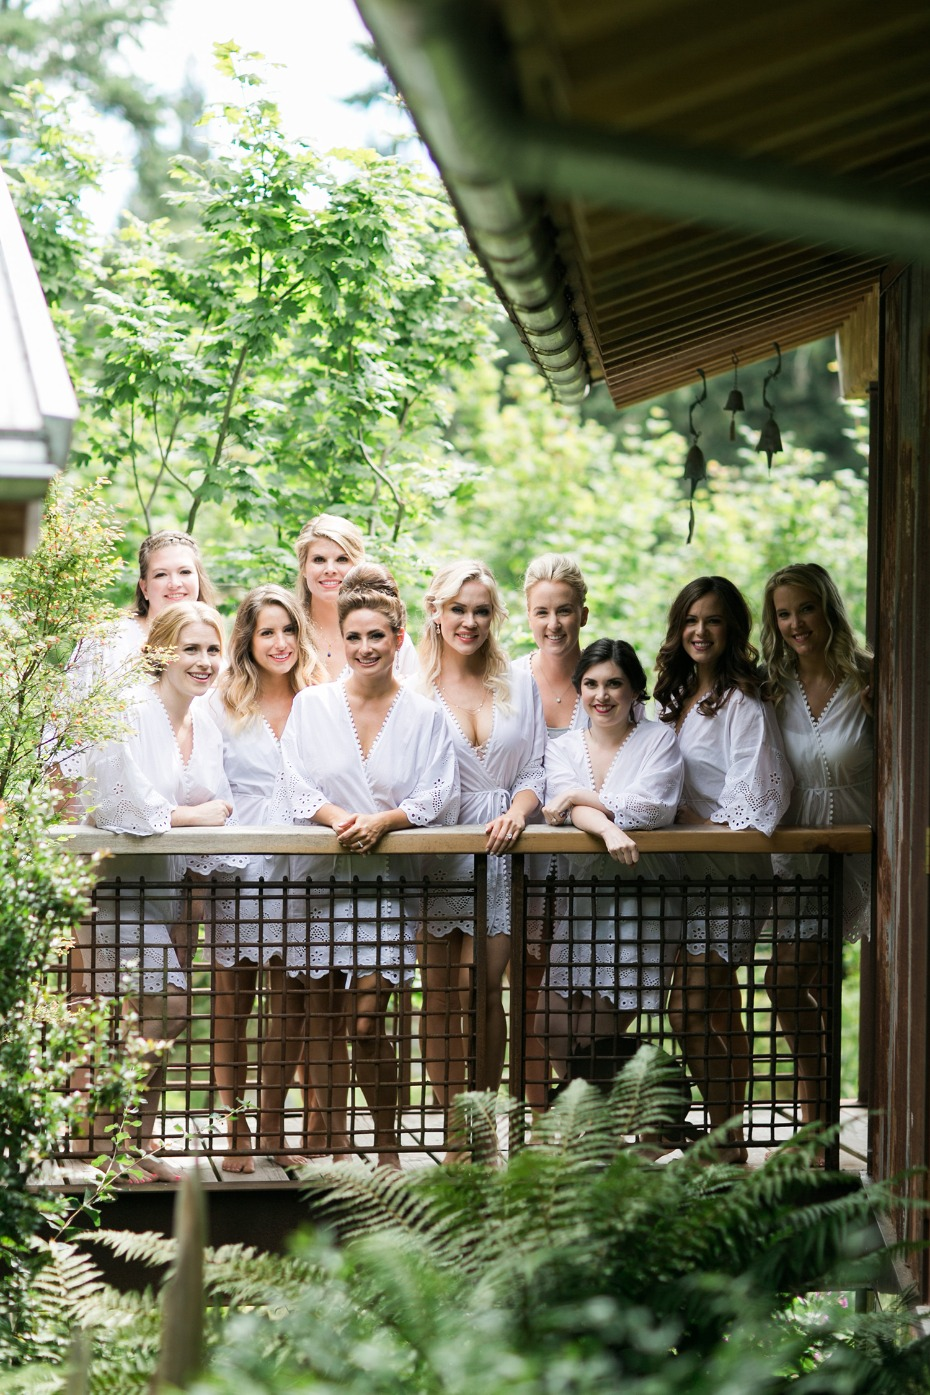 Matching white bridesmaid robes